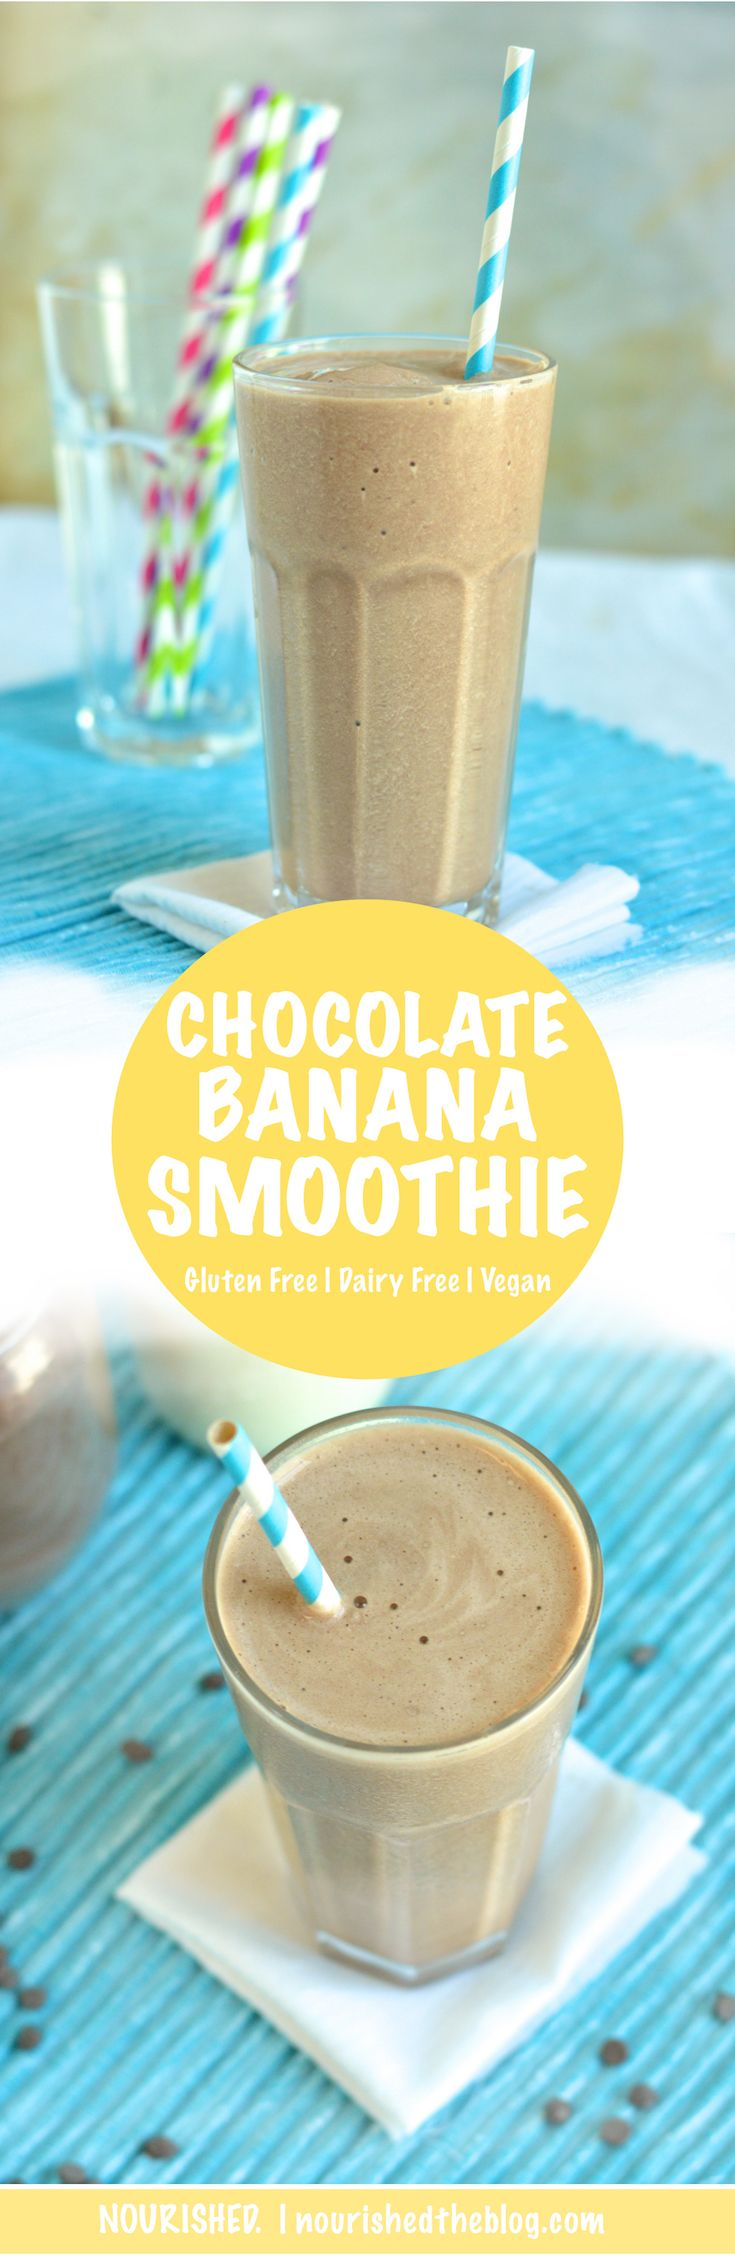 A tasty chocolate banana smoothie recipe made with bananas, milk, cocoa powder and honey. Like a chocolate milkshake - but better! Get the recipe now!